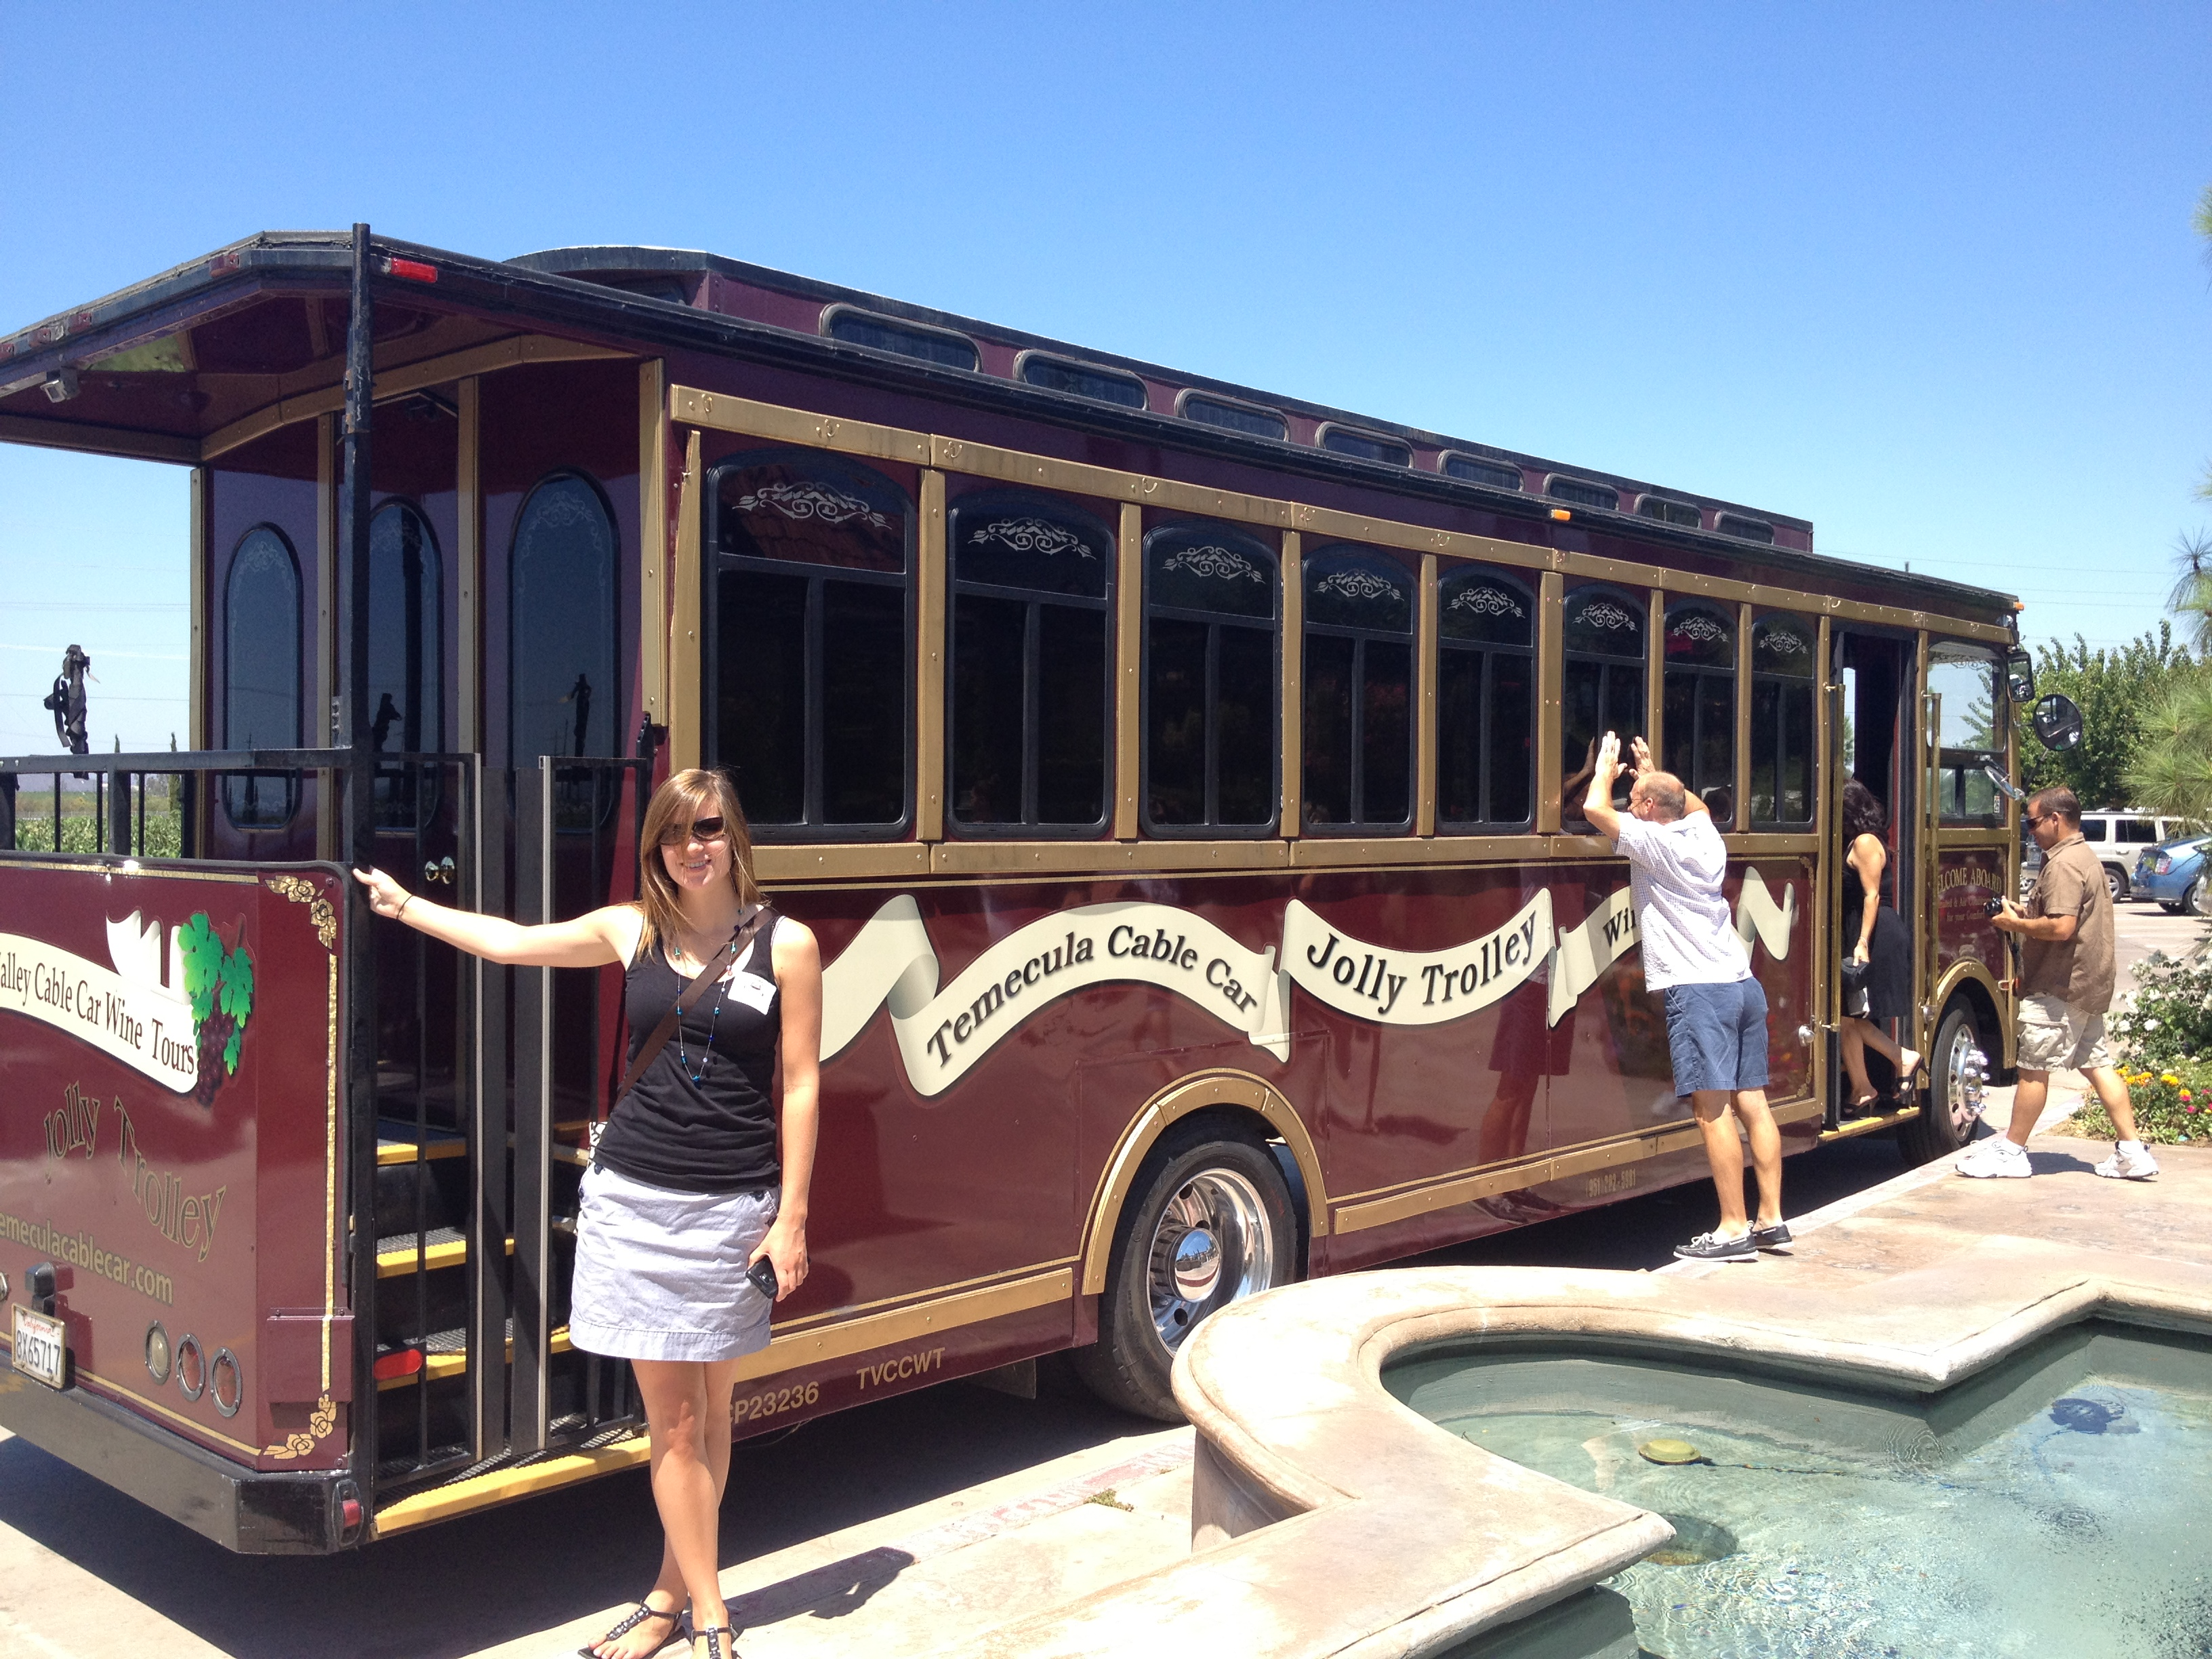 Temecula Valley Cable Car Tour